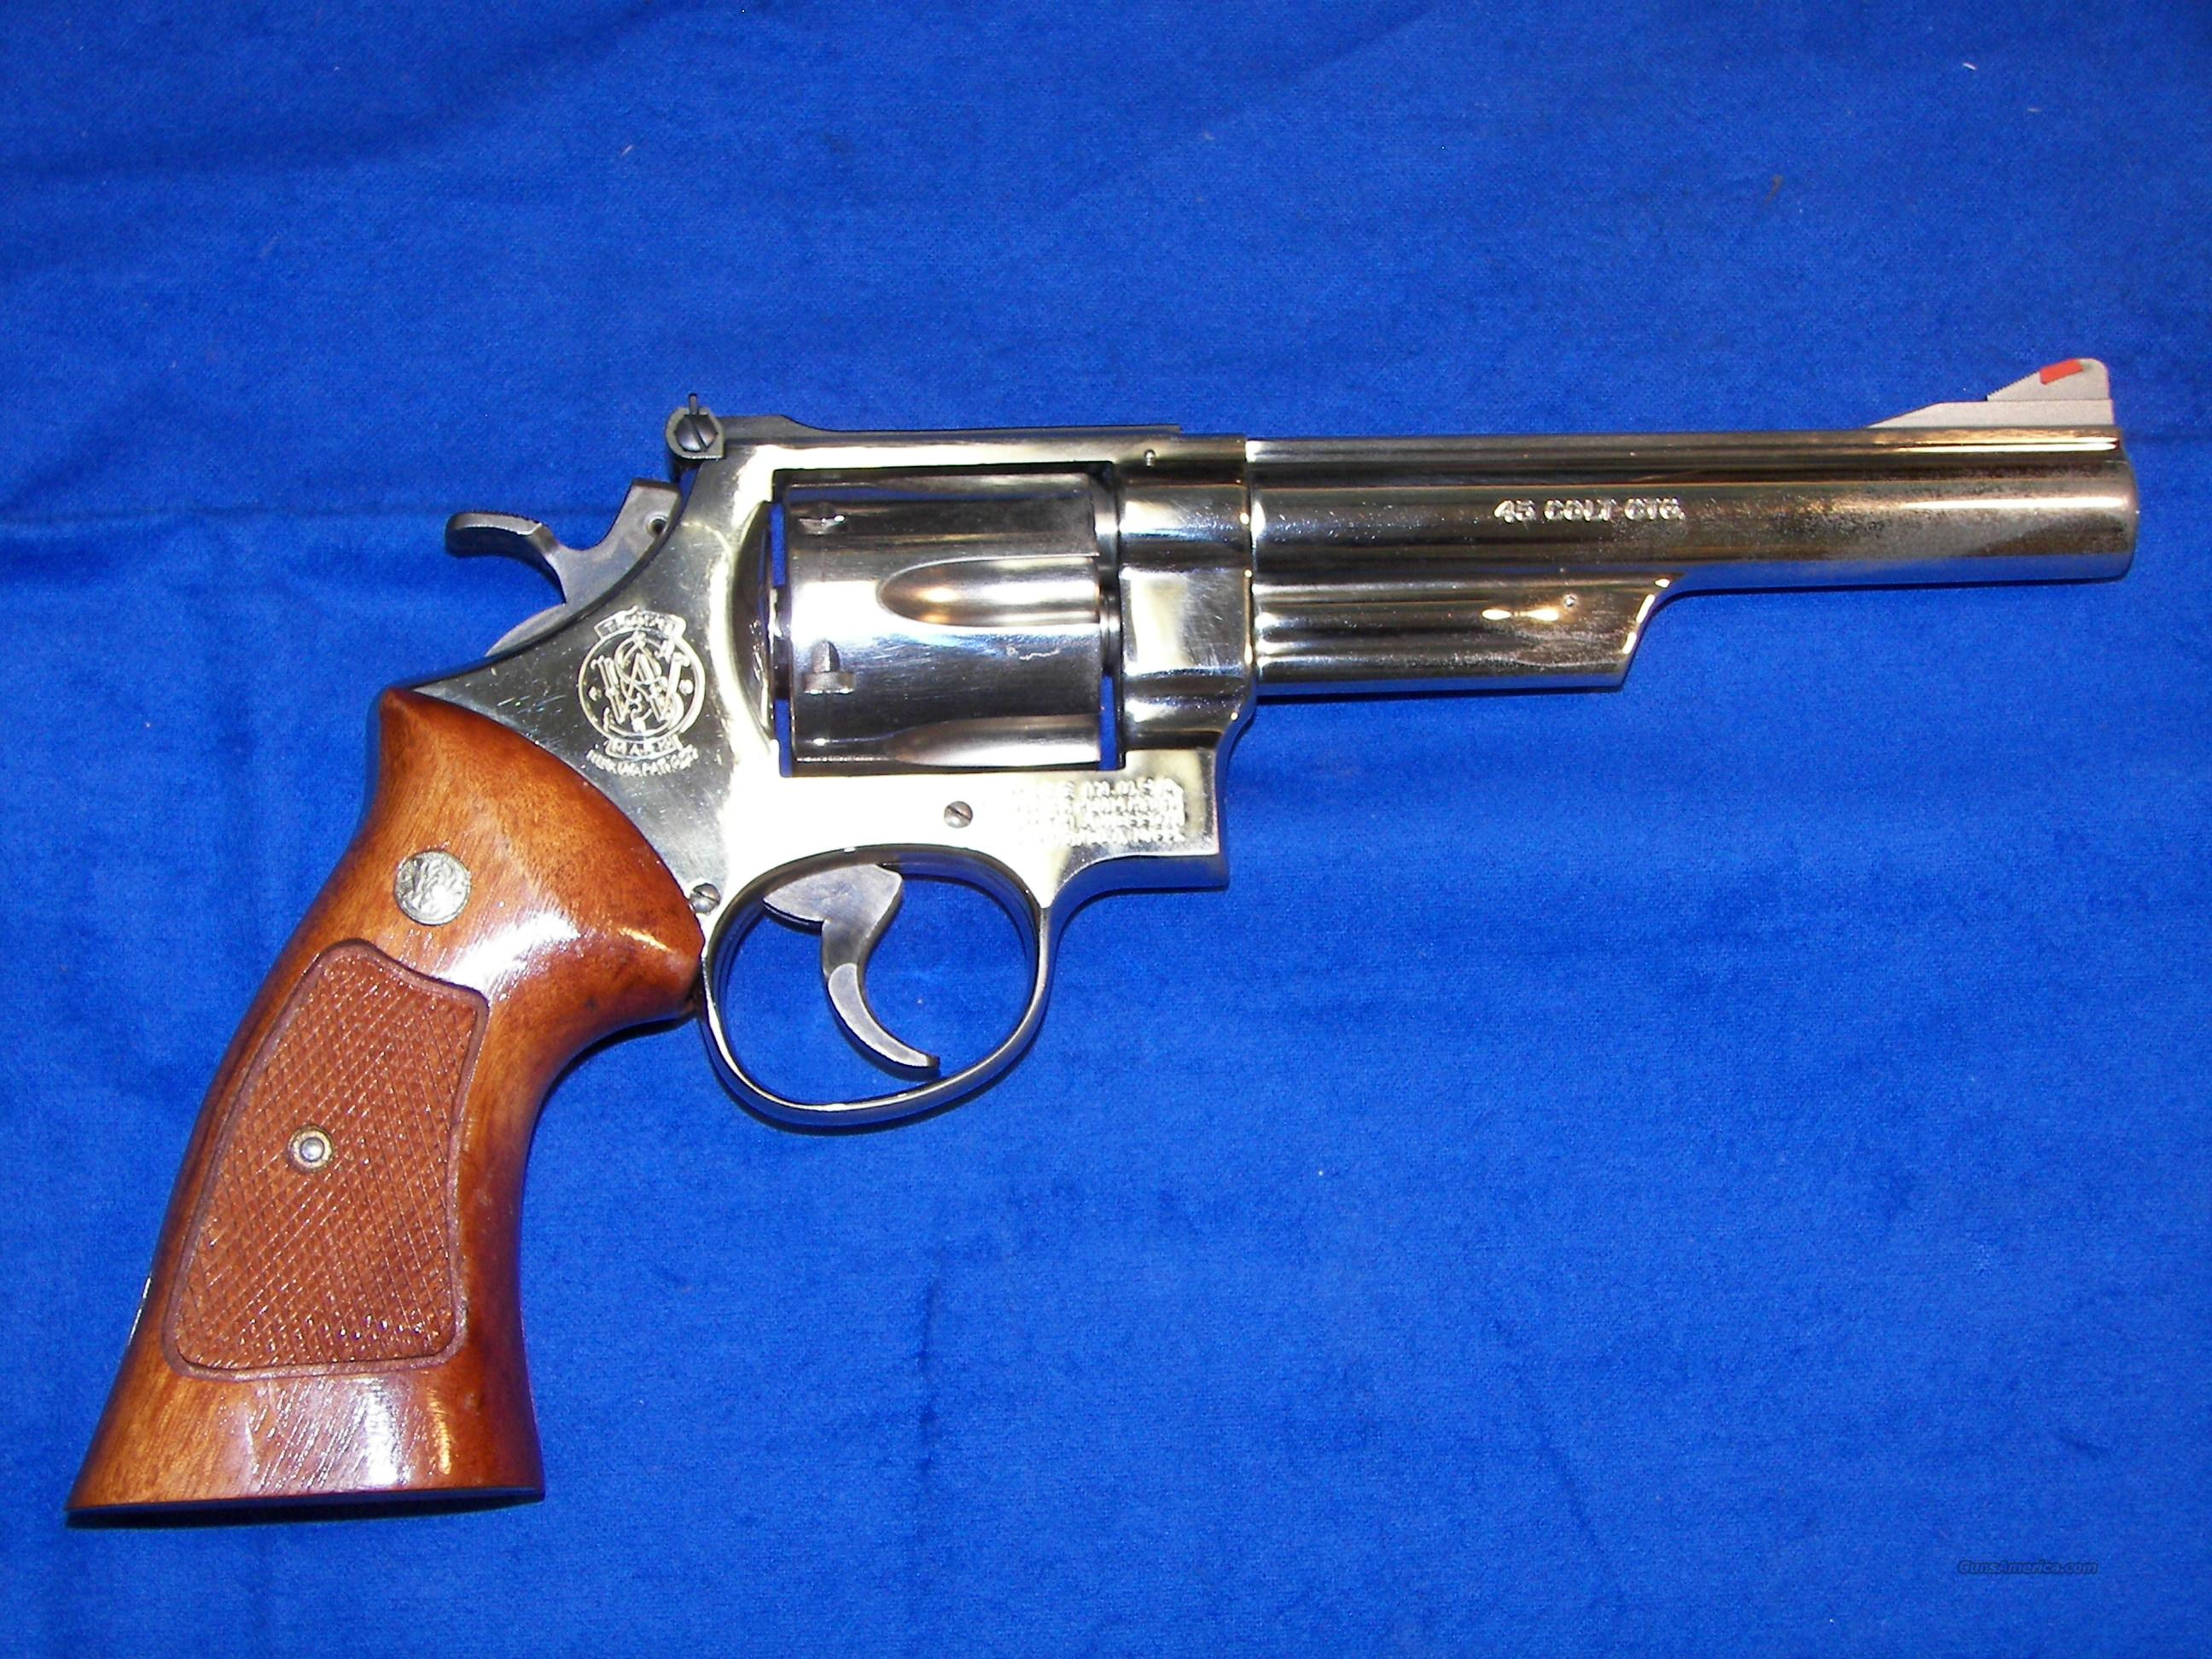 "SMITH & WESSON  25-5   45 COLT  6""  NICKEL  Guns > Pistols > Smith & Wesson Revolvers > Full Frame Revolver"